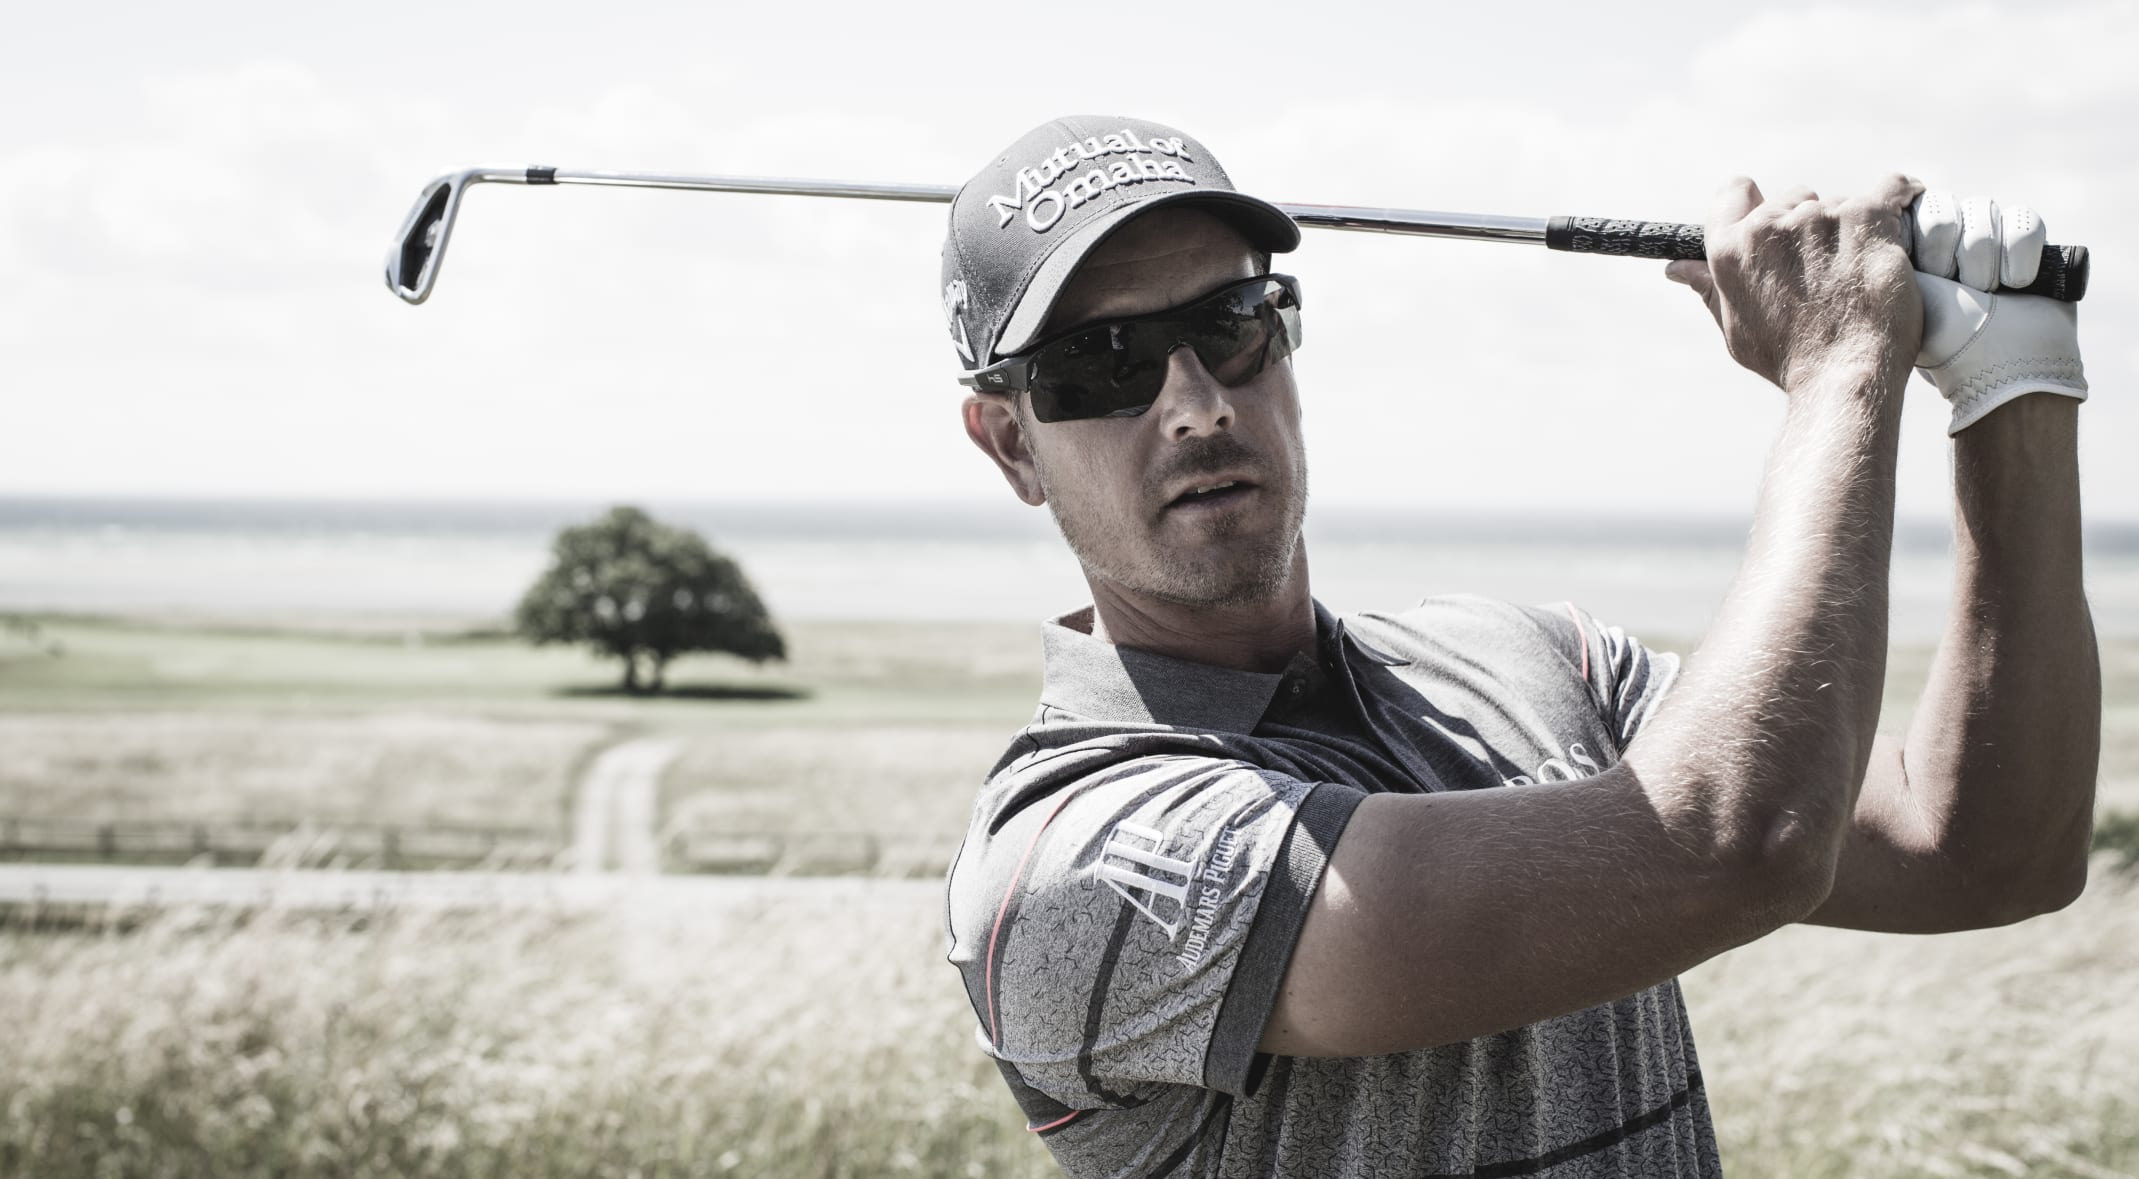 211700a8ec32 The reigning Open Champion and 2013 FedEx Cup Champion has added 'Eyewear  Entrepreneur' to